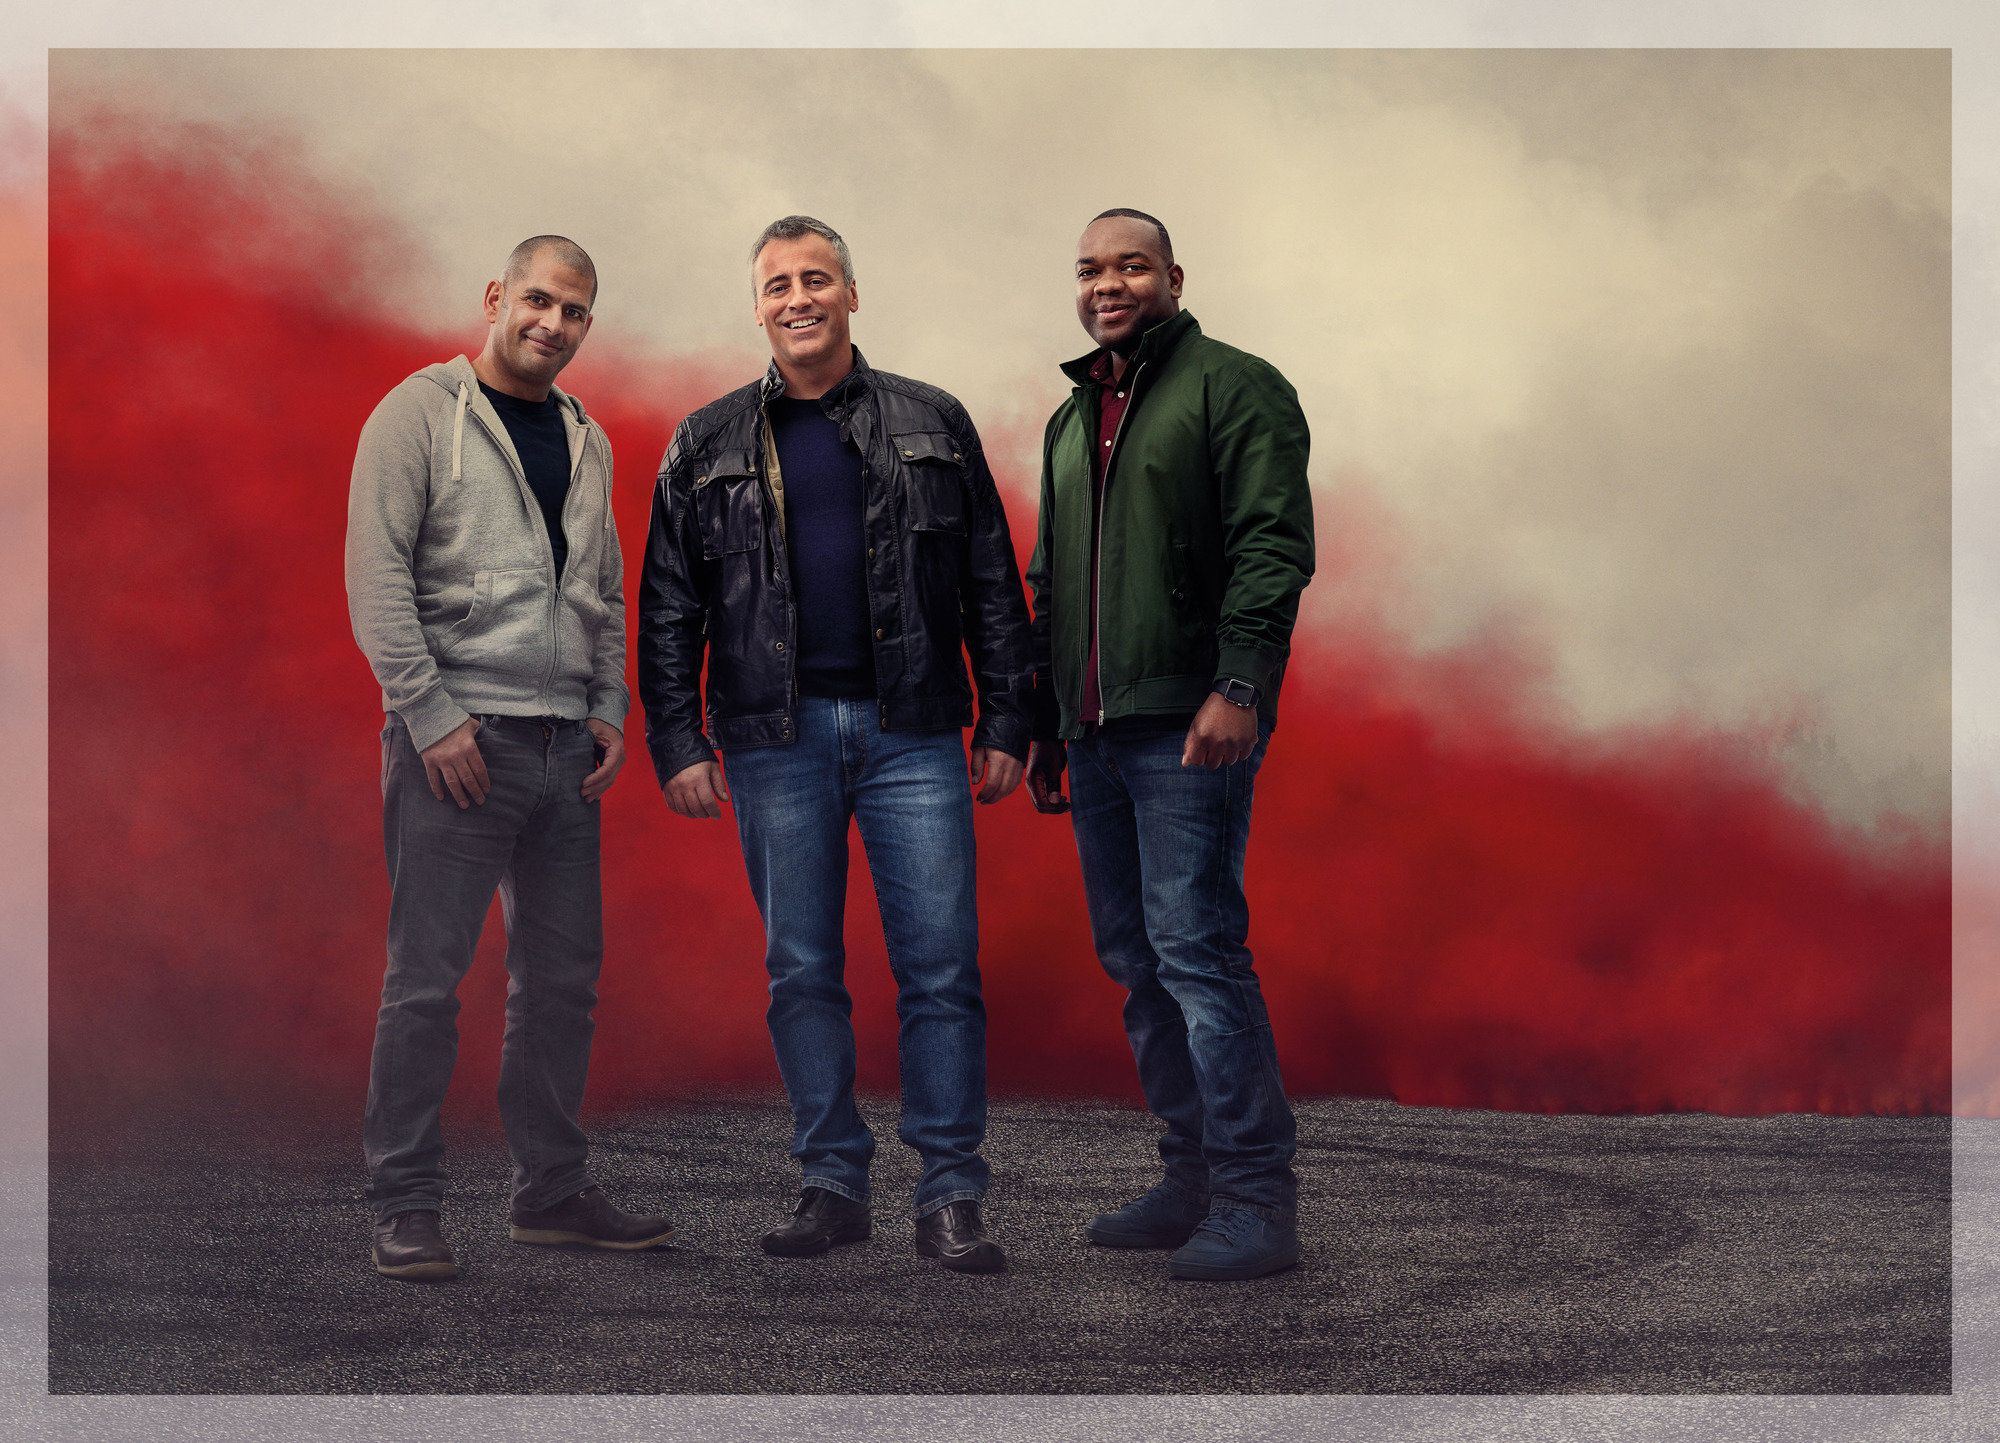 The 'Top Gear' Ratings Are In, And It's Not Good News For Matt LeBlanc And